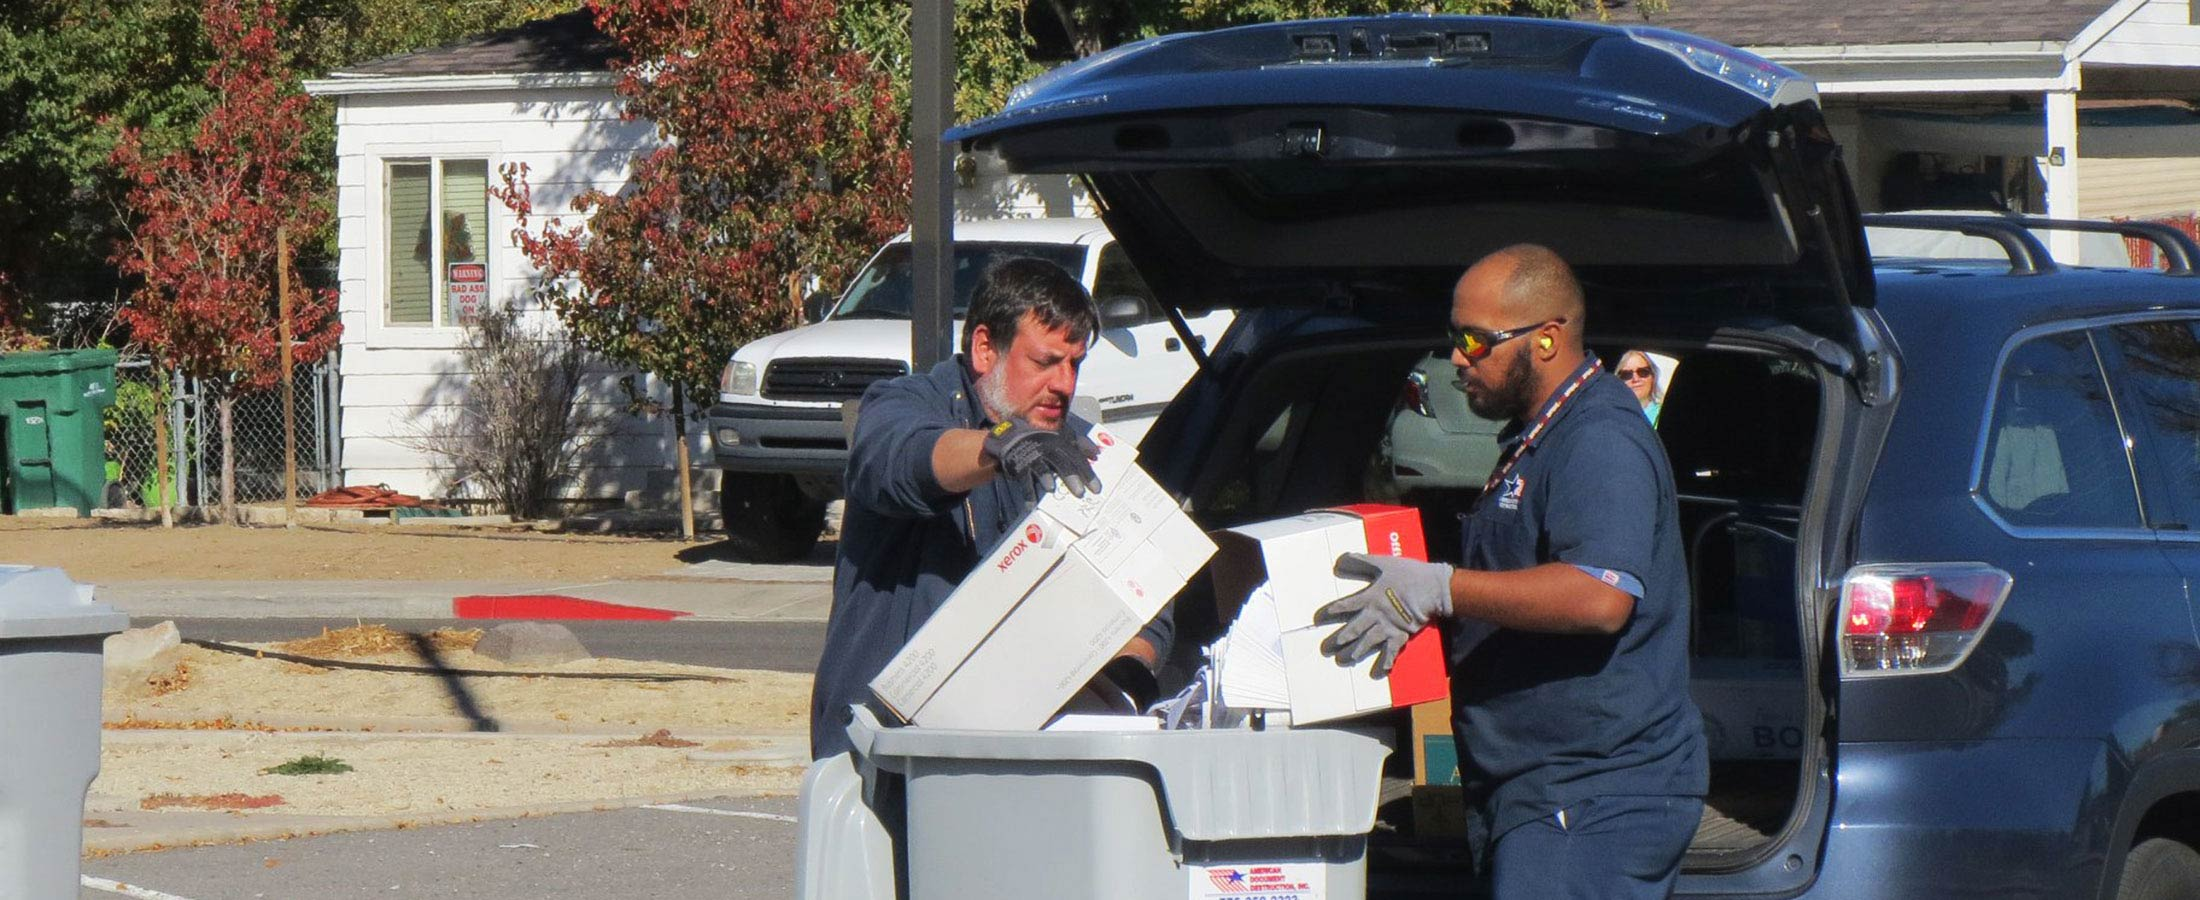 two workers emptying boxes of paper into shredding container